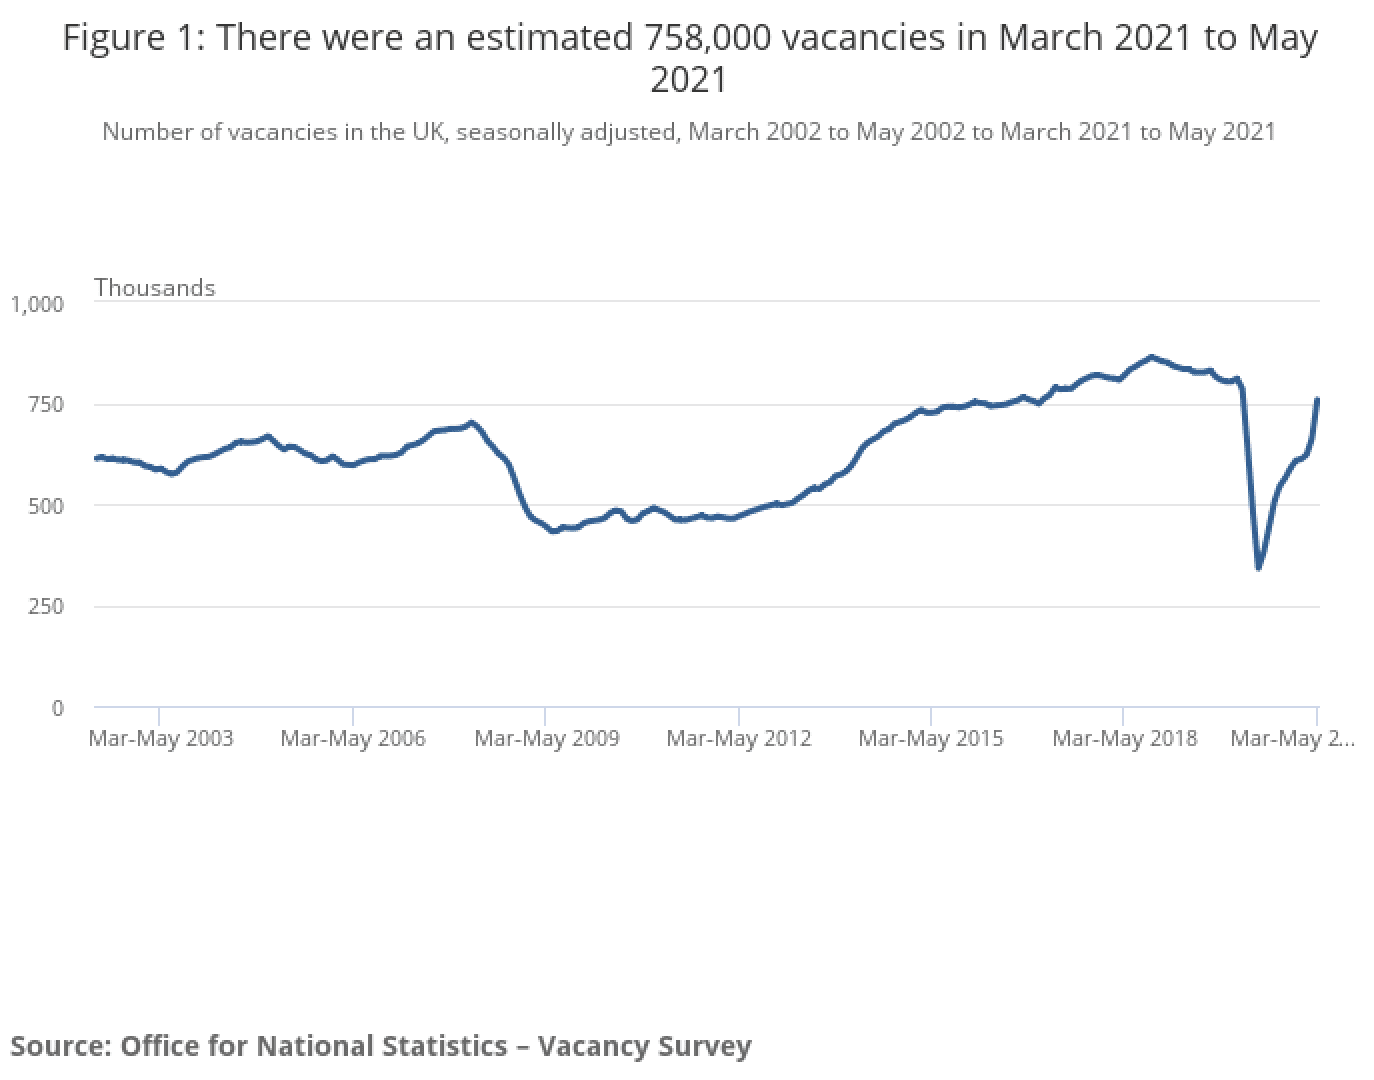 graph showing the estimated number of vacancies betweenMarch and May 2021